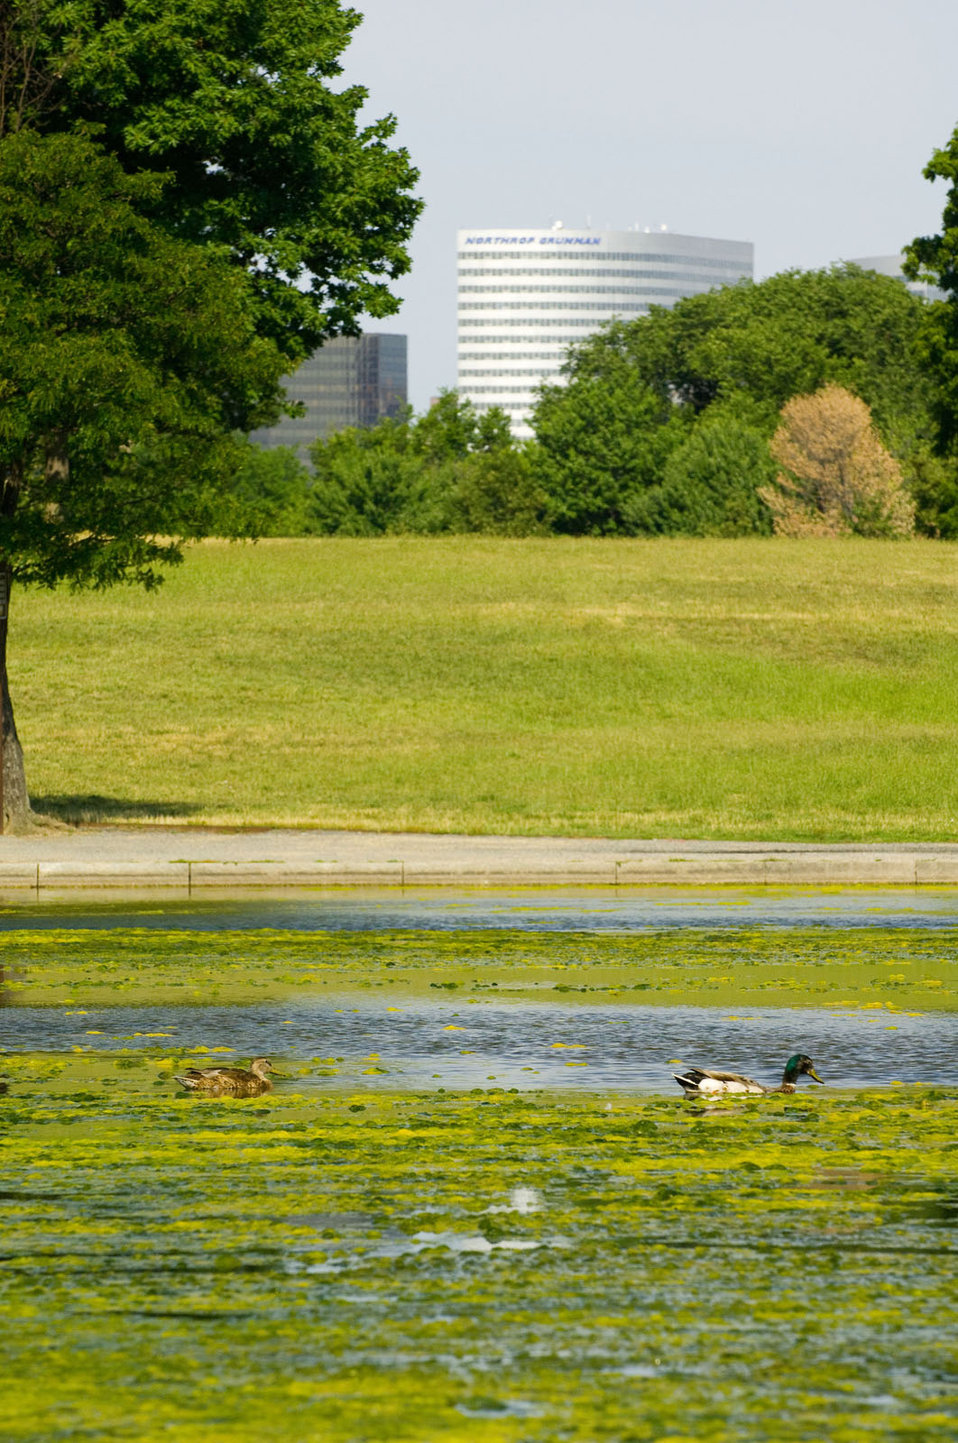 July 12, 2013 - DC Algal Bloom